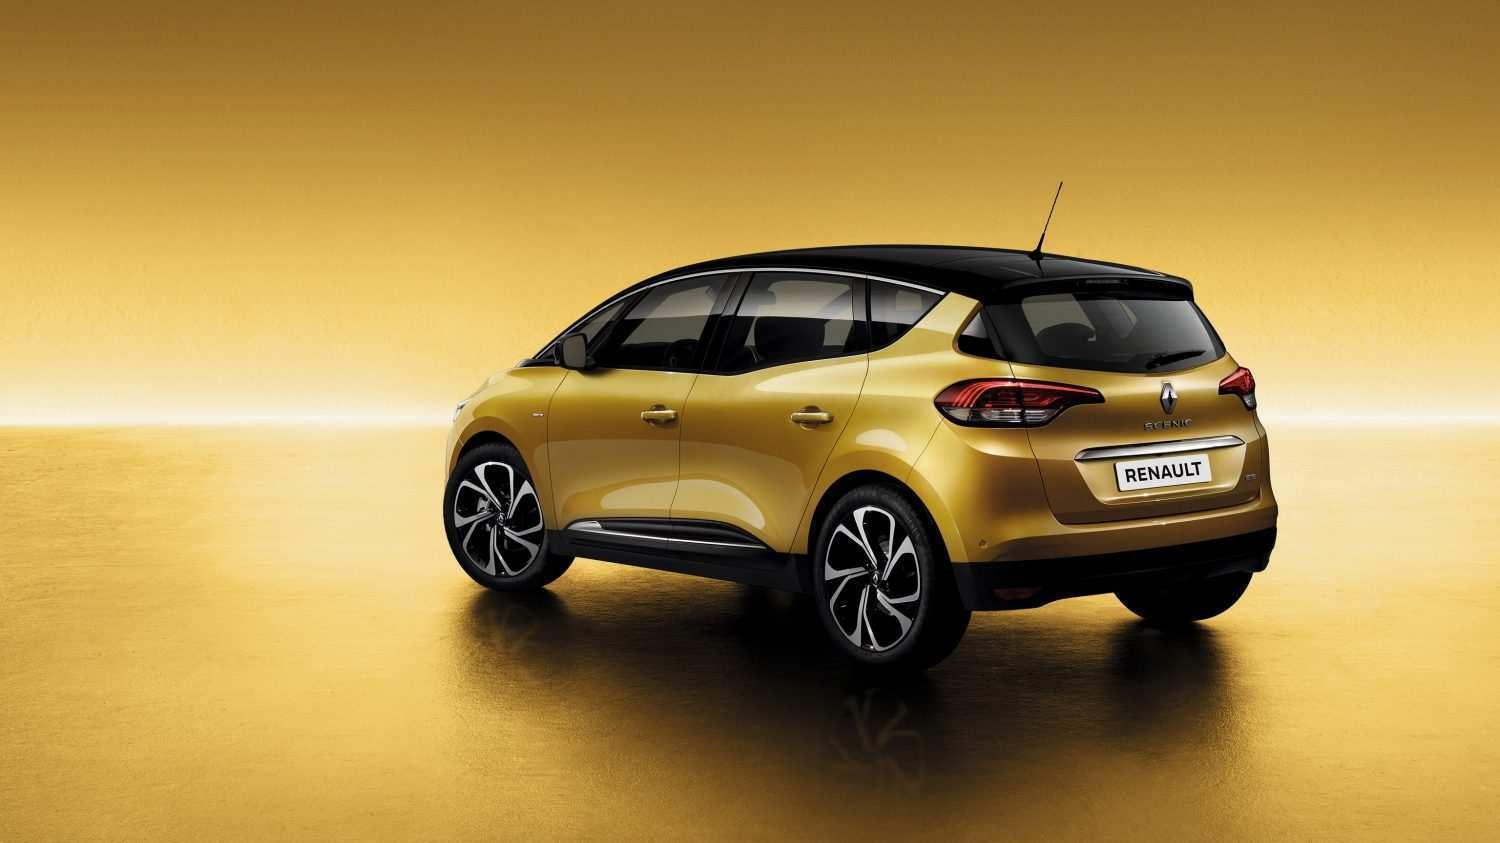 69 New Renault Scenic 2019 Spesification with Renault Scenic 2019